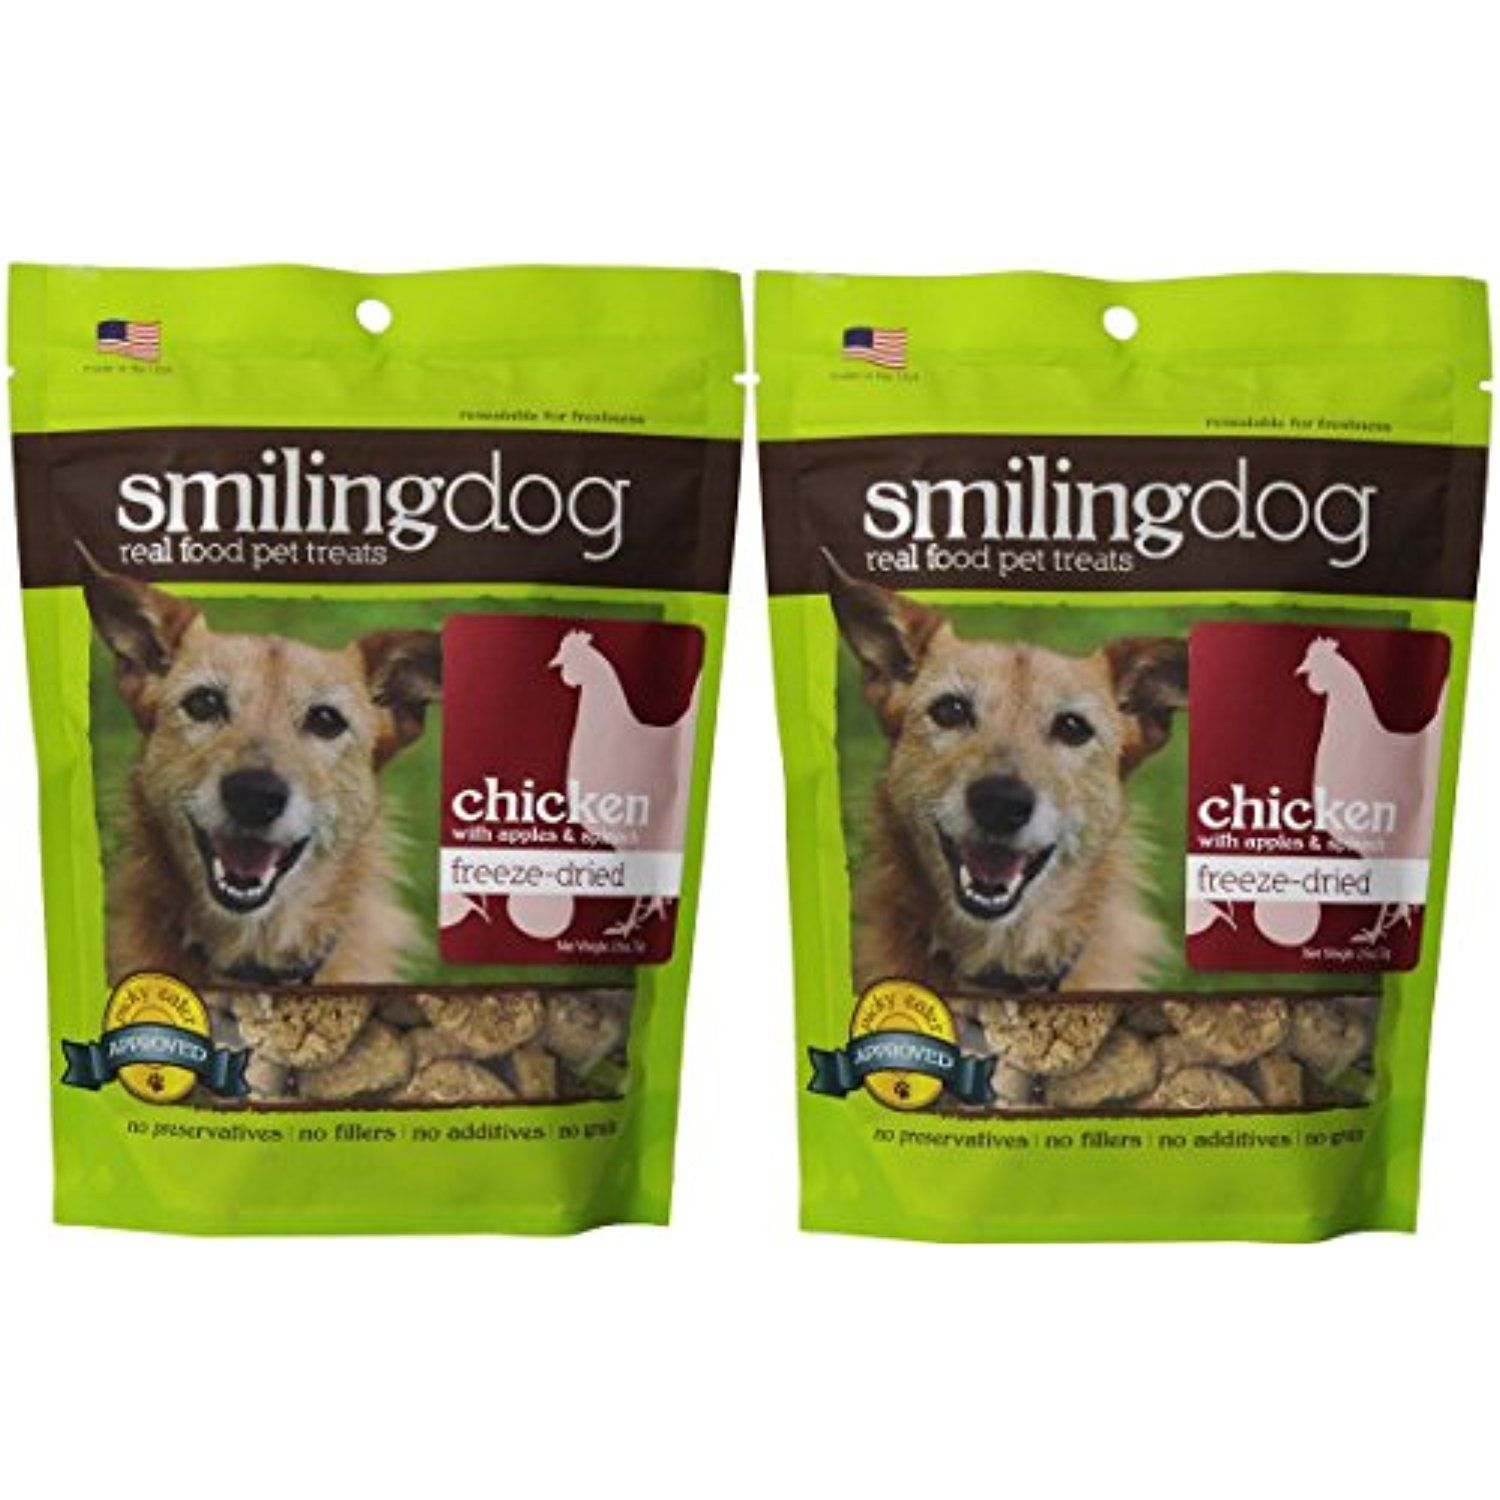 CHICKEN OR DUCK FREEZE DRIED SMILING DOG TREATS ALL